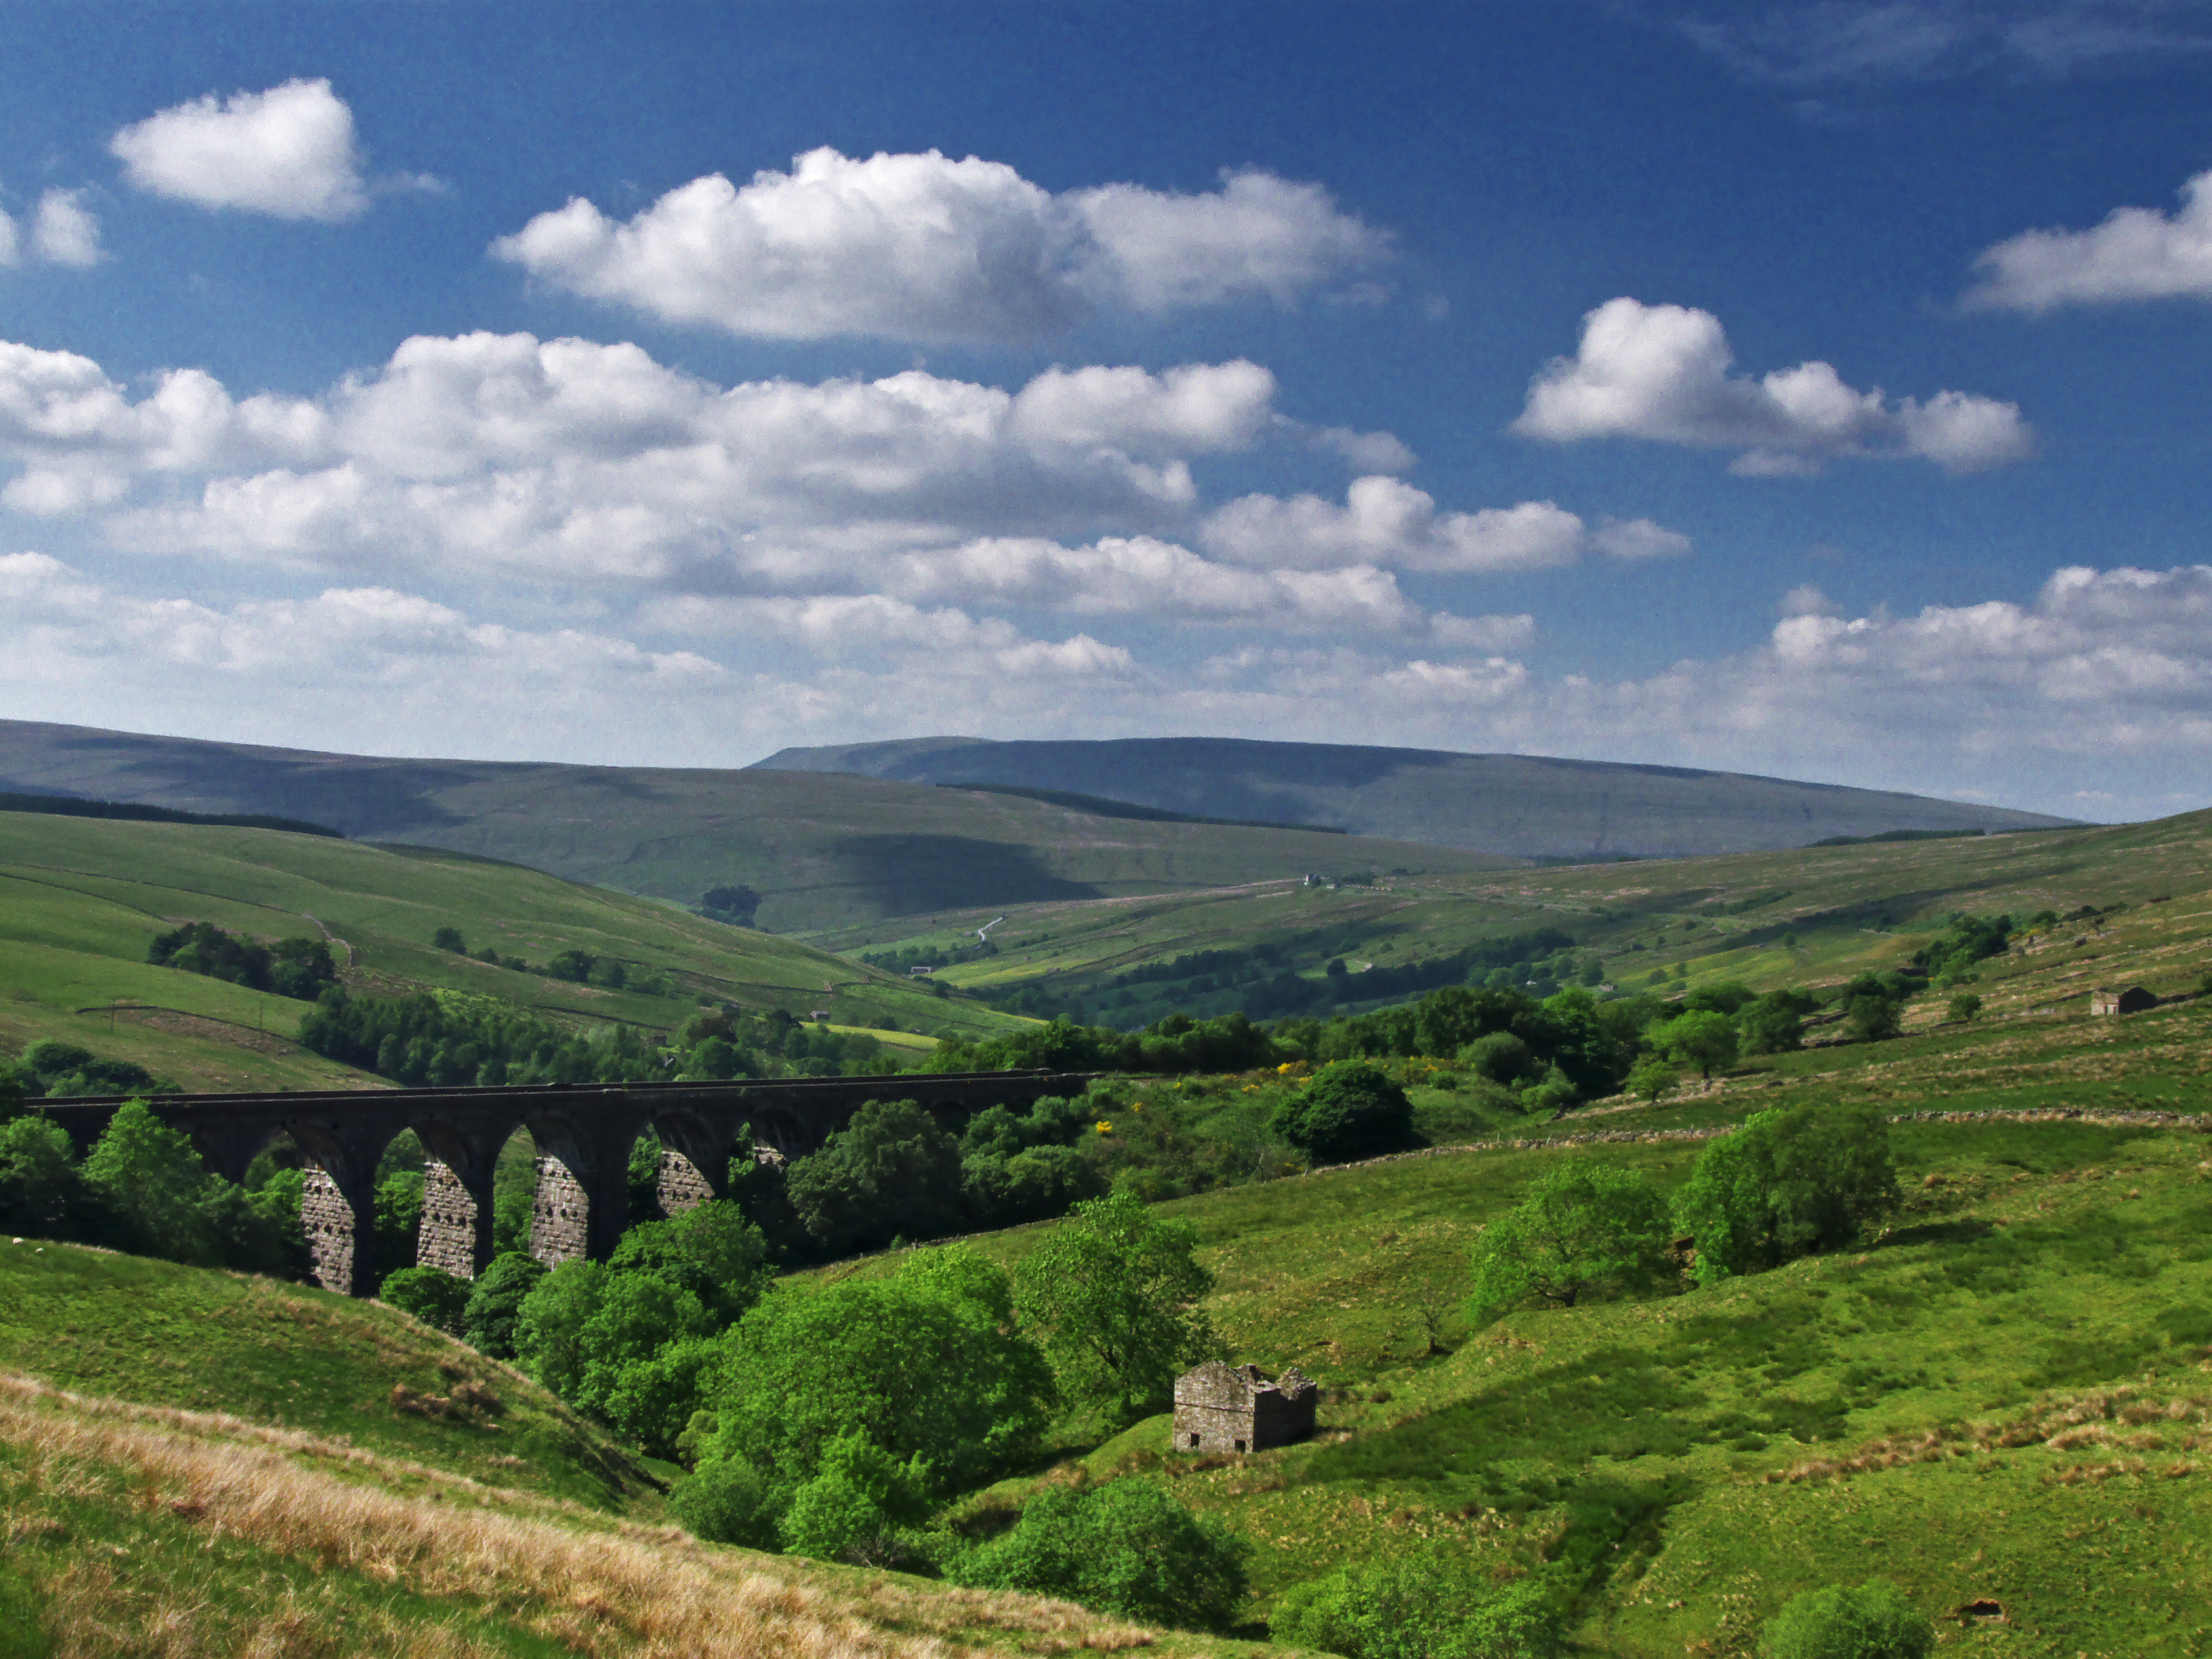 Dent dale valley photo